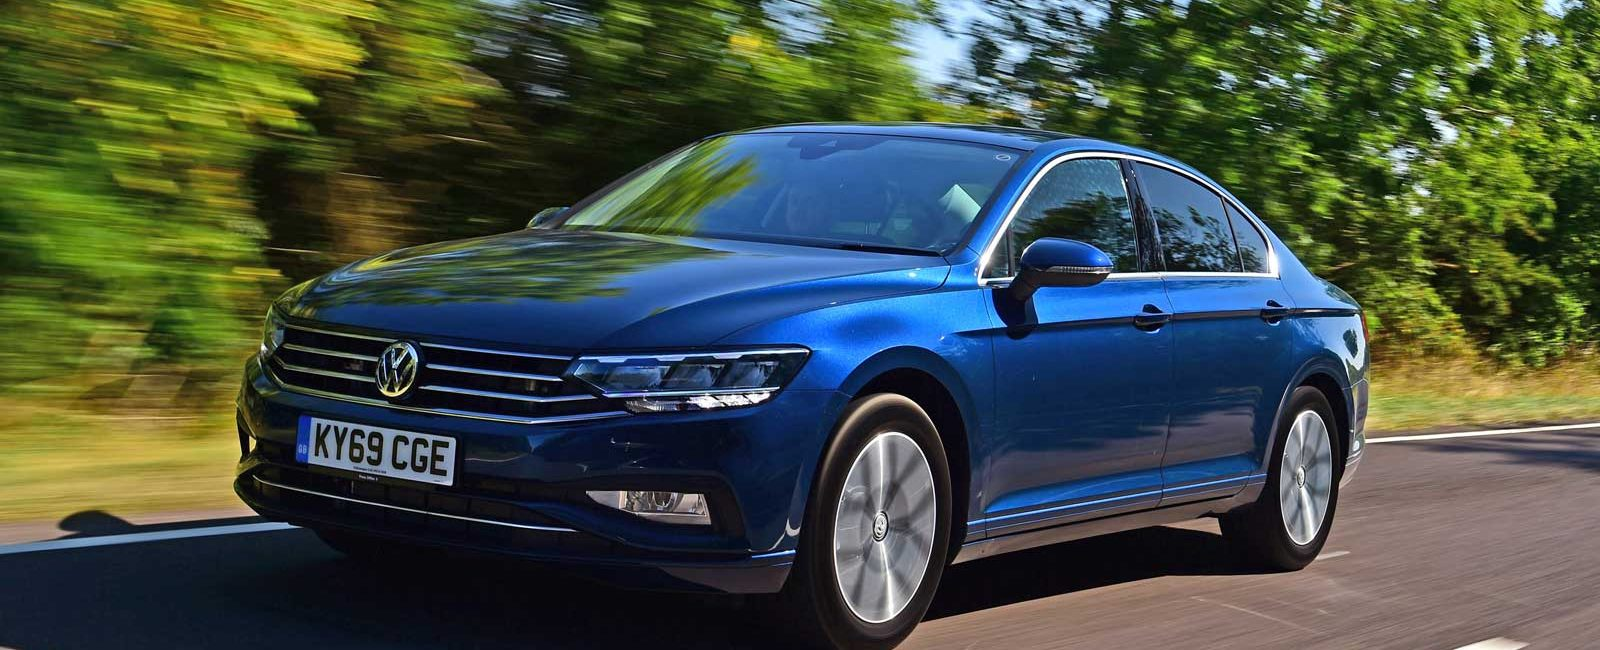 Five Volkswagen's For a Reliable Car